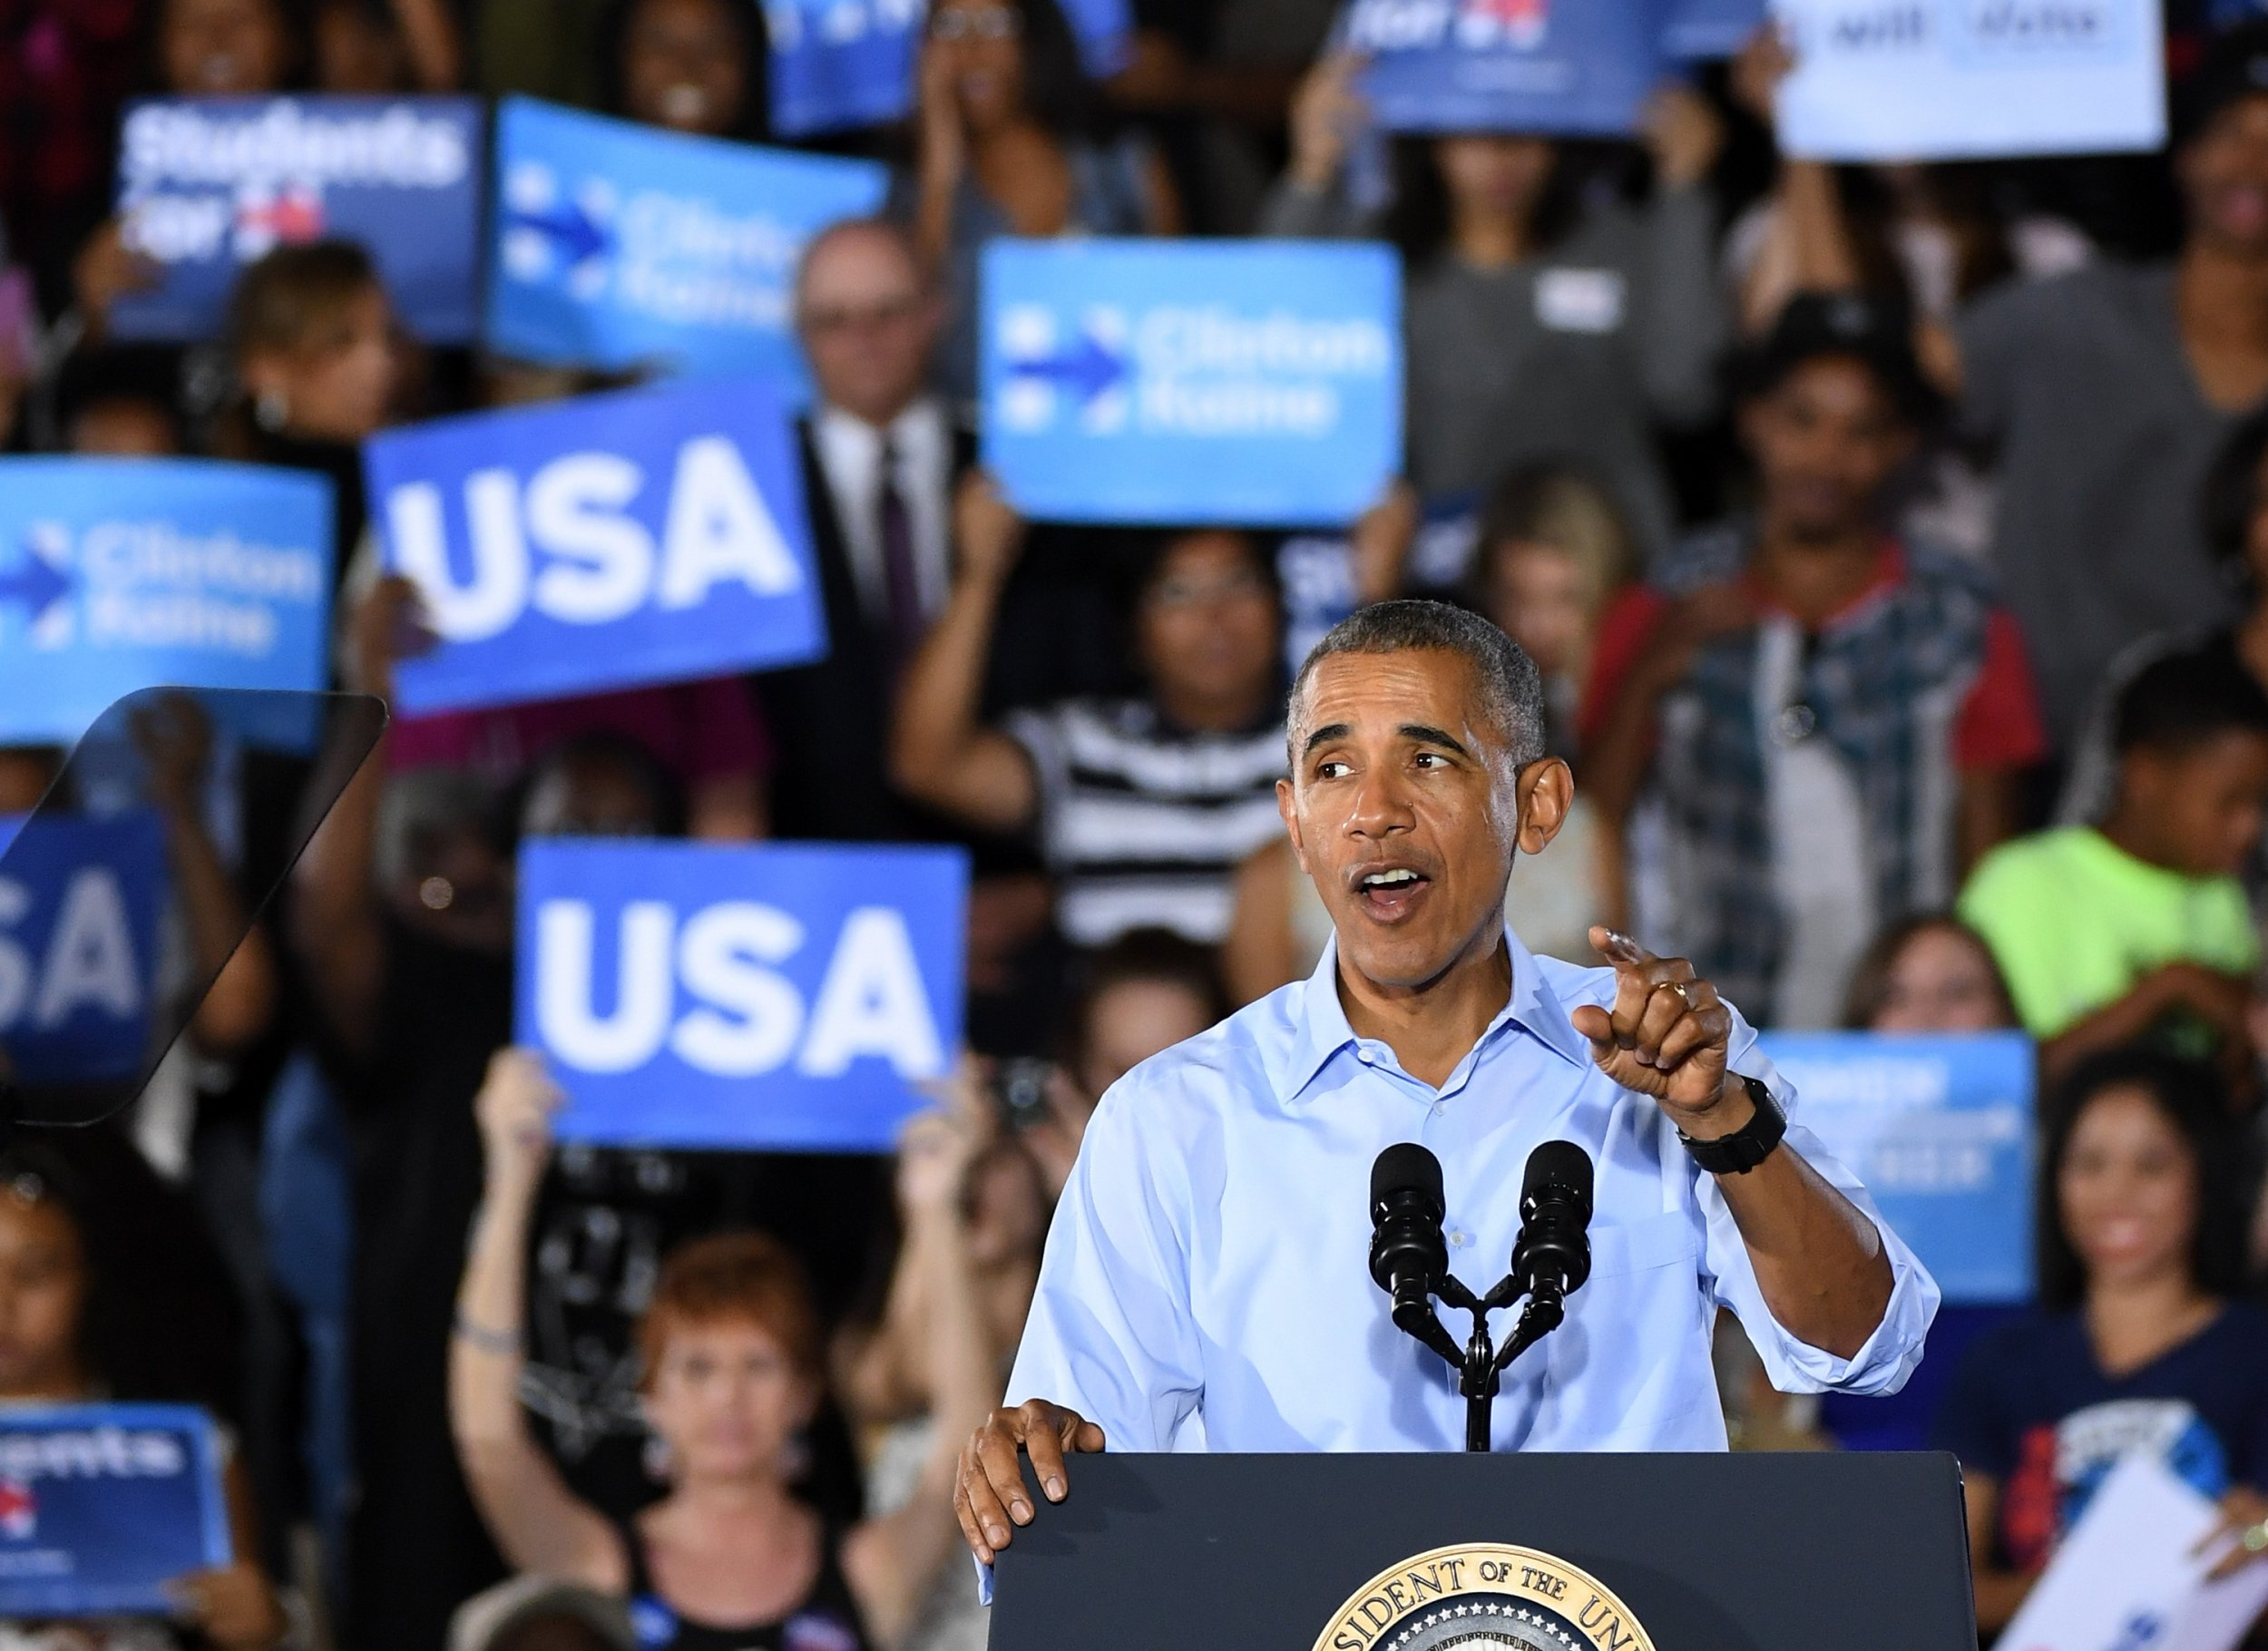 Barack Obama?s message to young Americans: No excuses, get out and vote